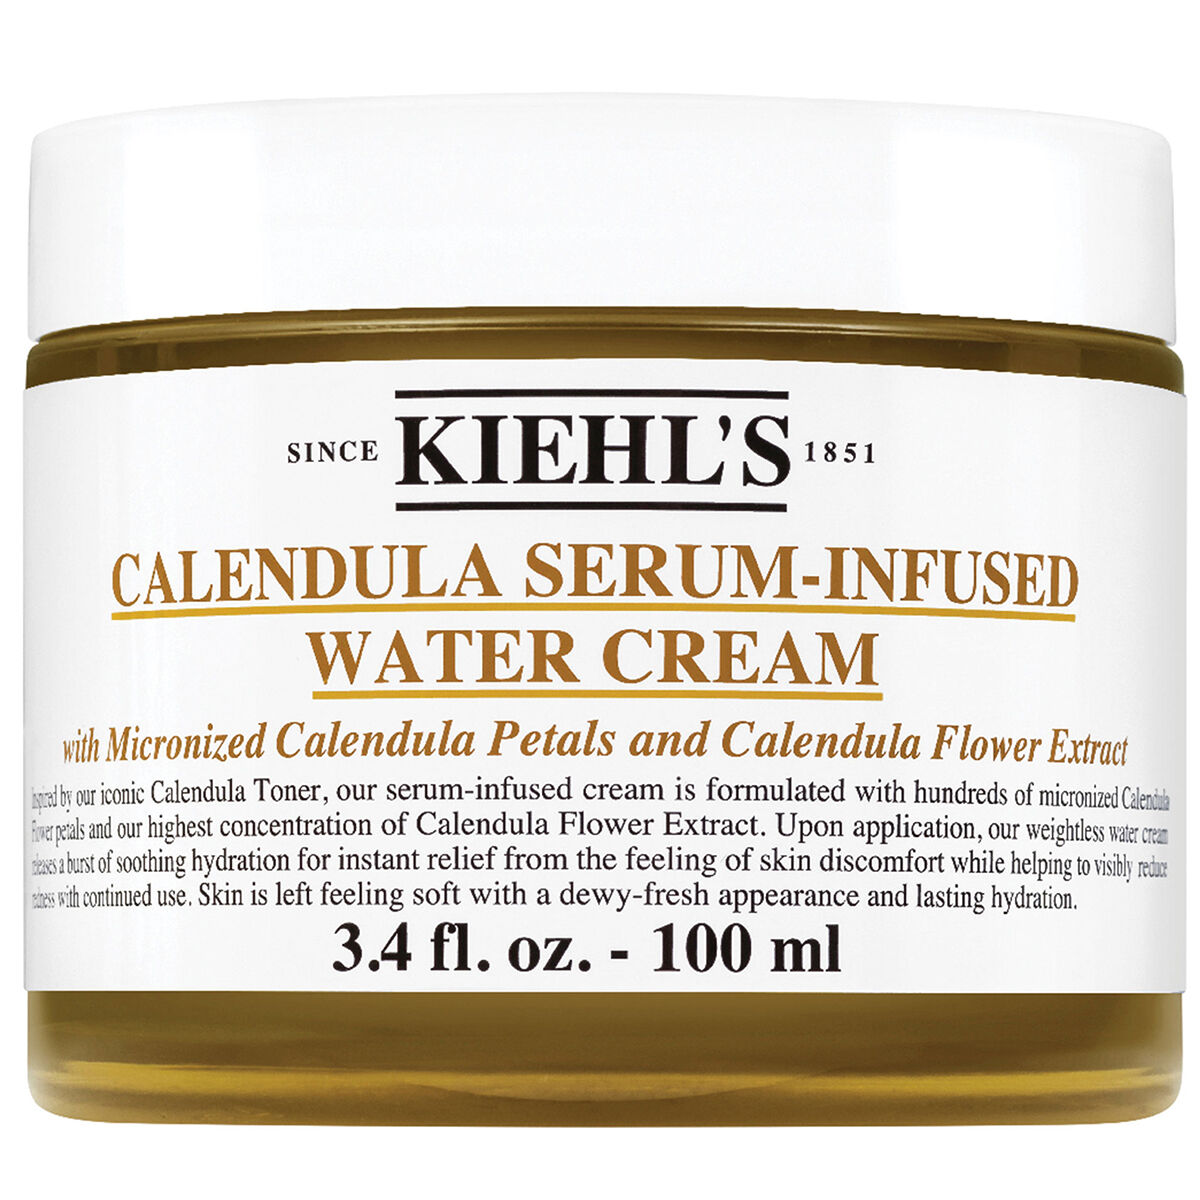 Calendula Serum-Infused Water Cream Khiel´s